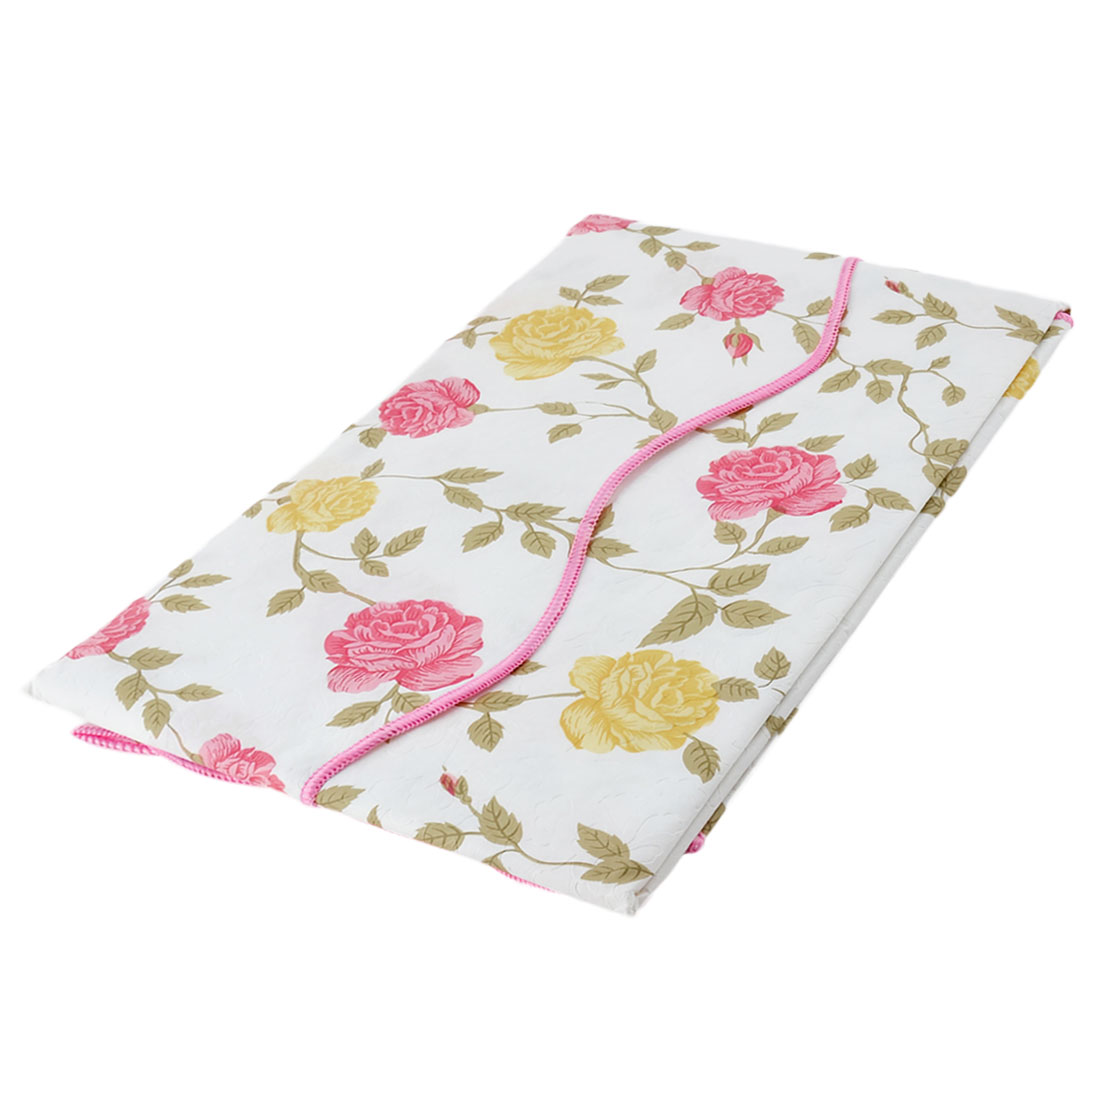 Home Picnics Bi-color Rose Pattern Water Resistant Oil-proof Tablecloth Table Cloth Cover 60 x 60 Inch